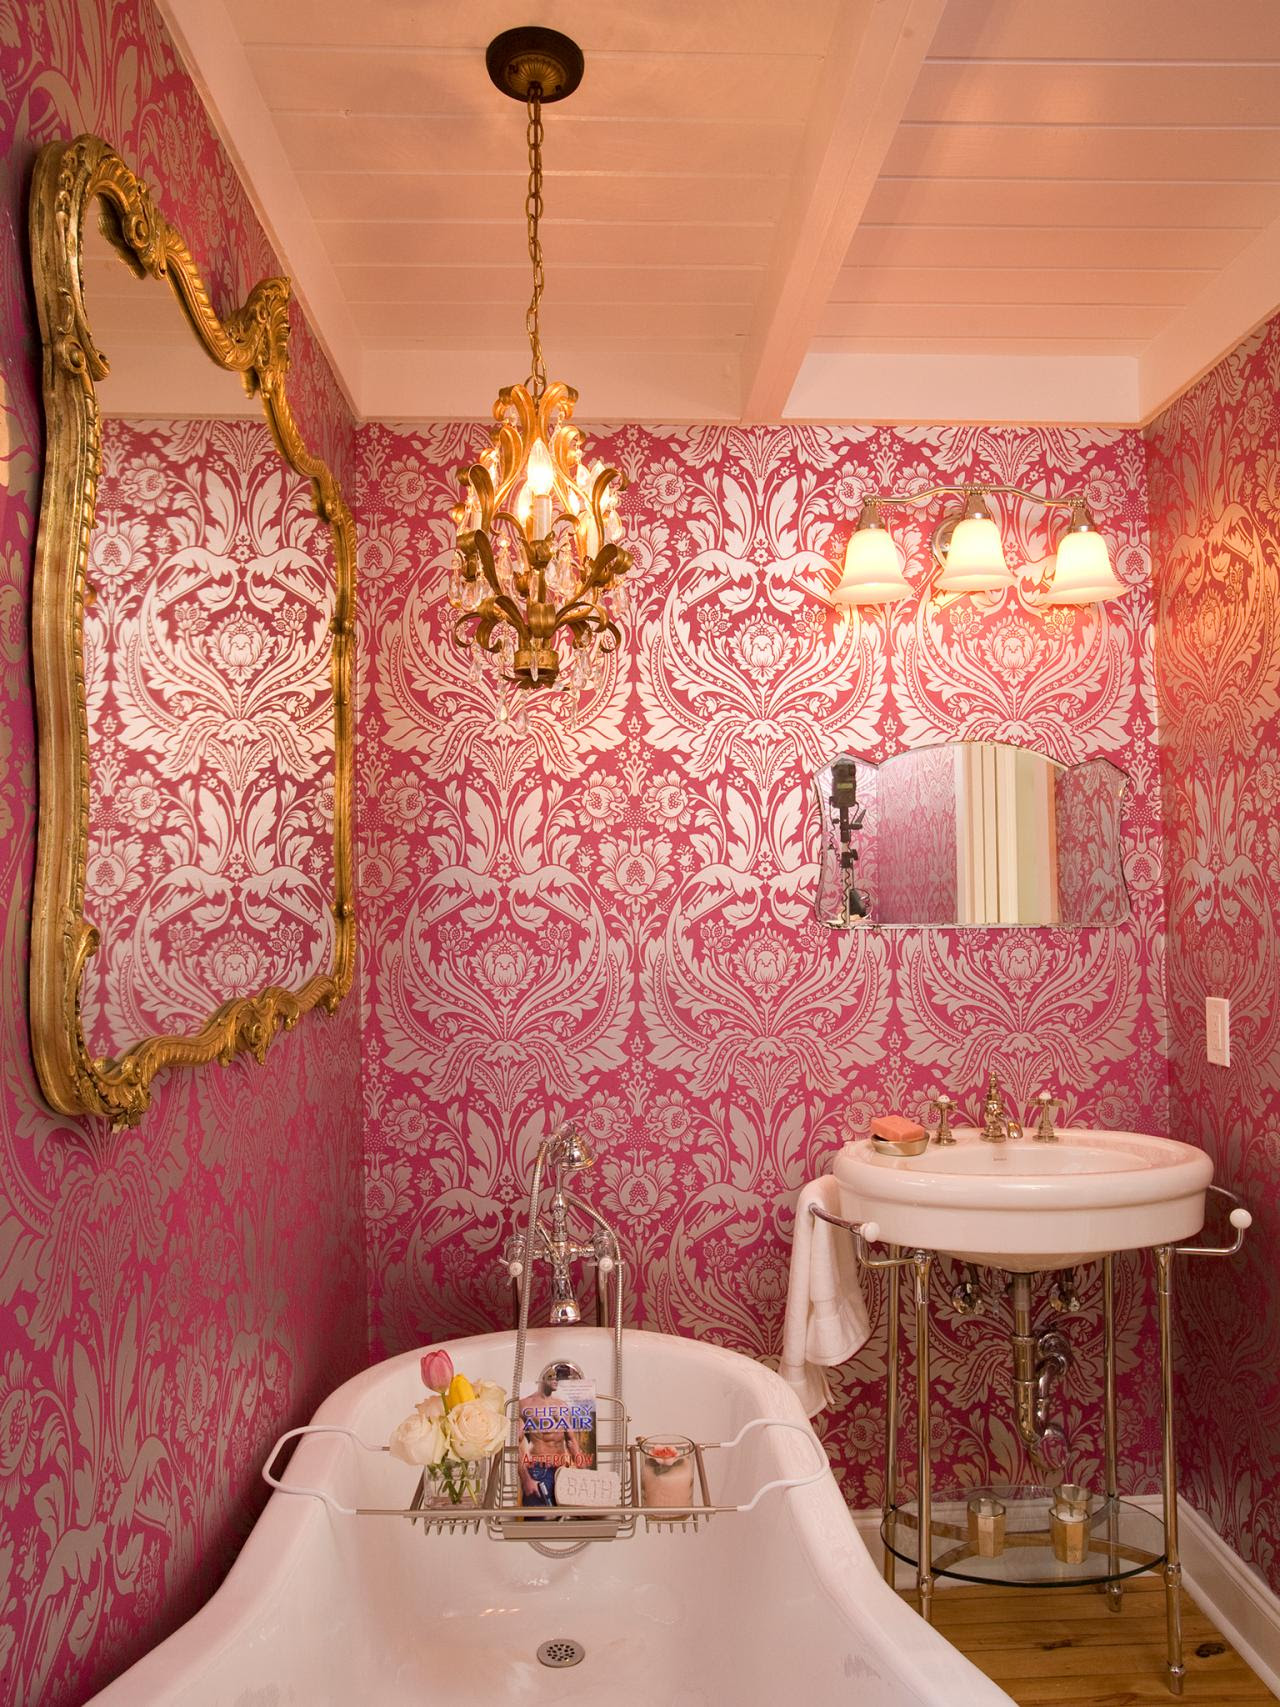 Reasons To Love Retro Pink Tiled Bathrooms HGTVs Decorating